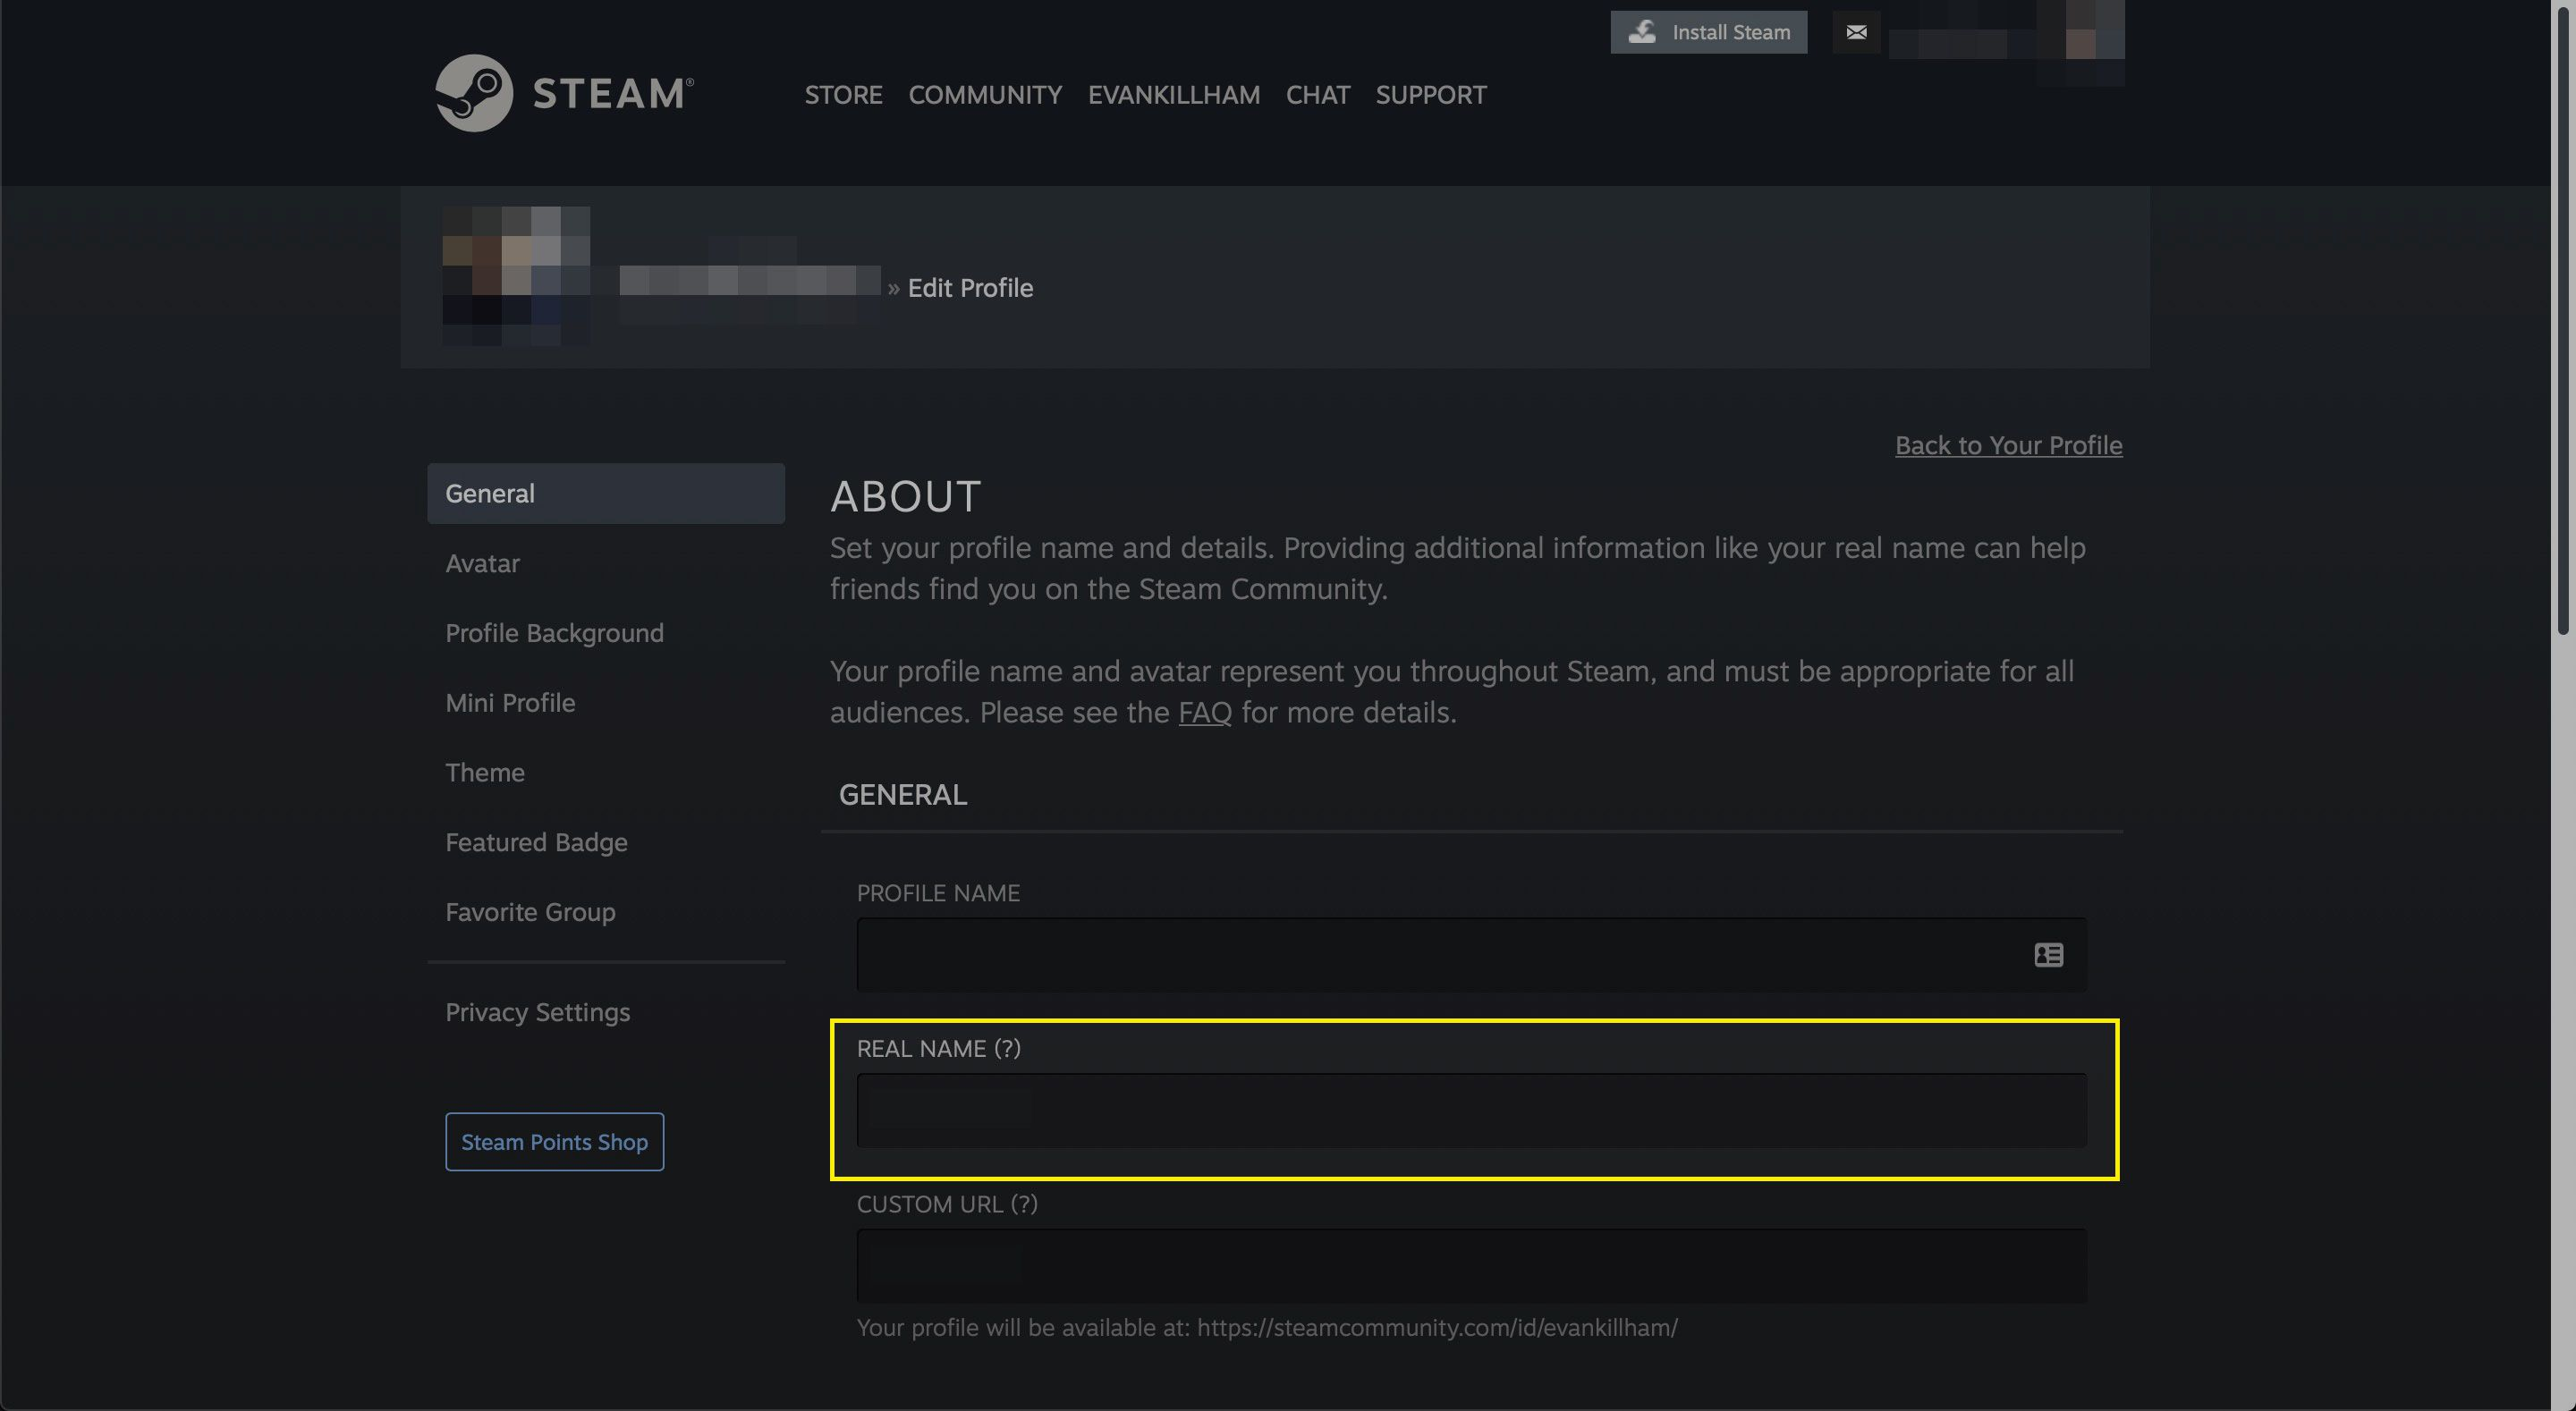 The Real Name field in a Steam profile